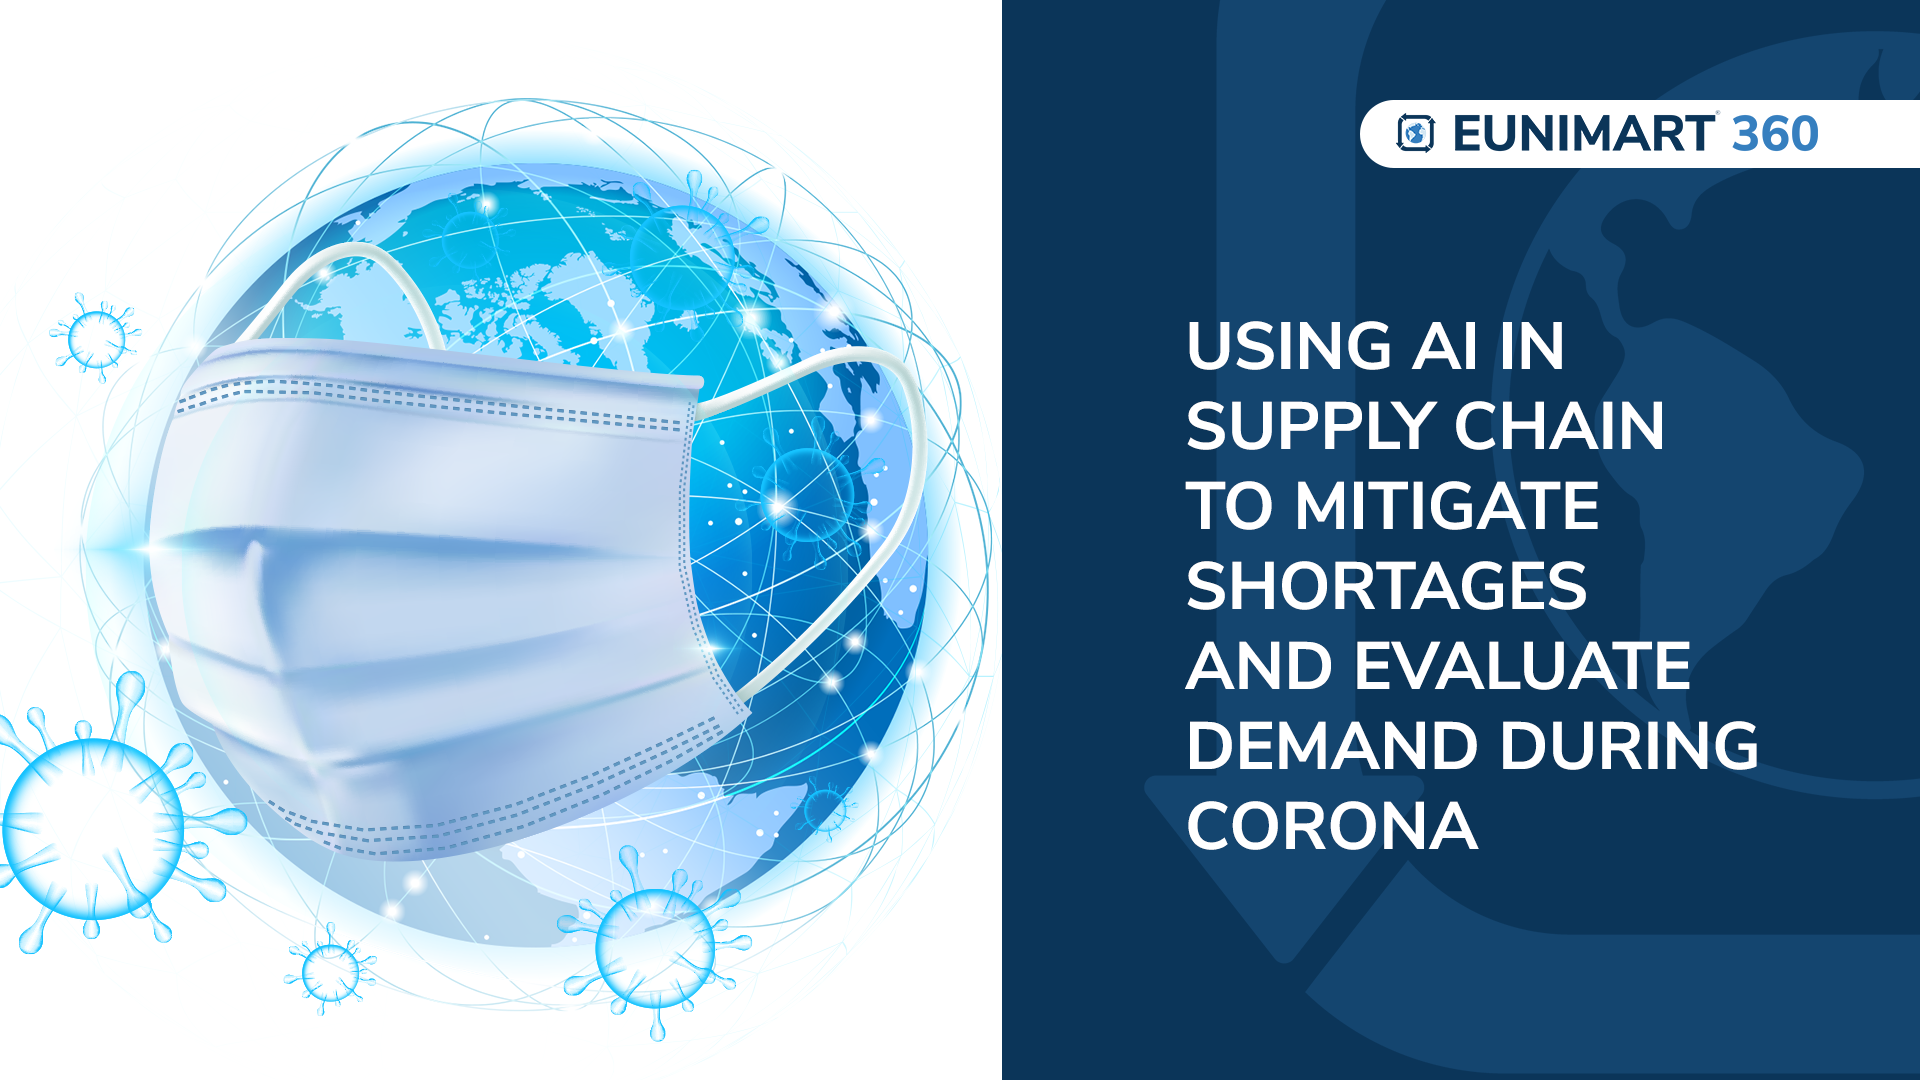 Using AI in Supply Chain to Mitigate Shortages and Evaluate Demand During Corona